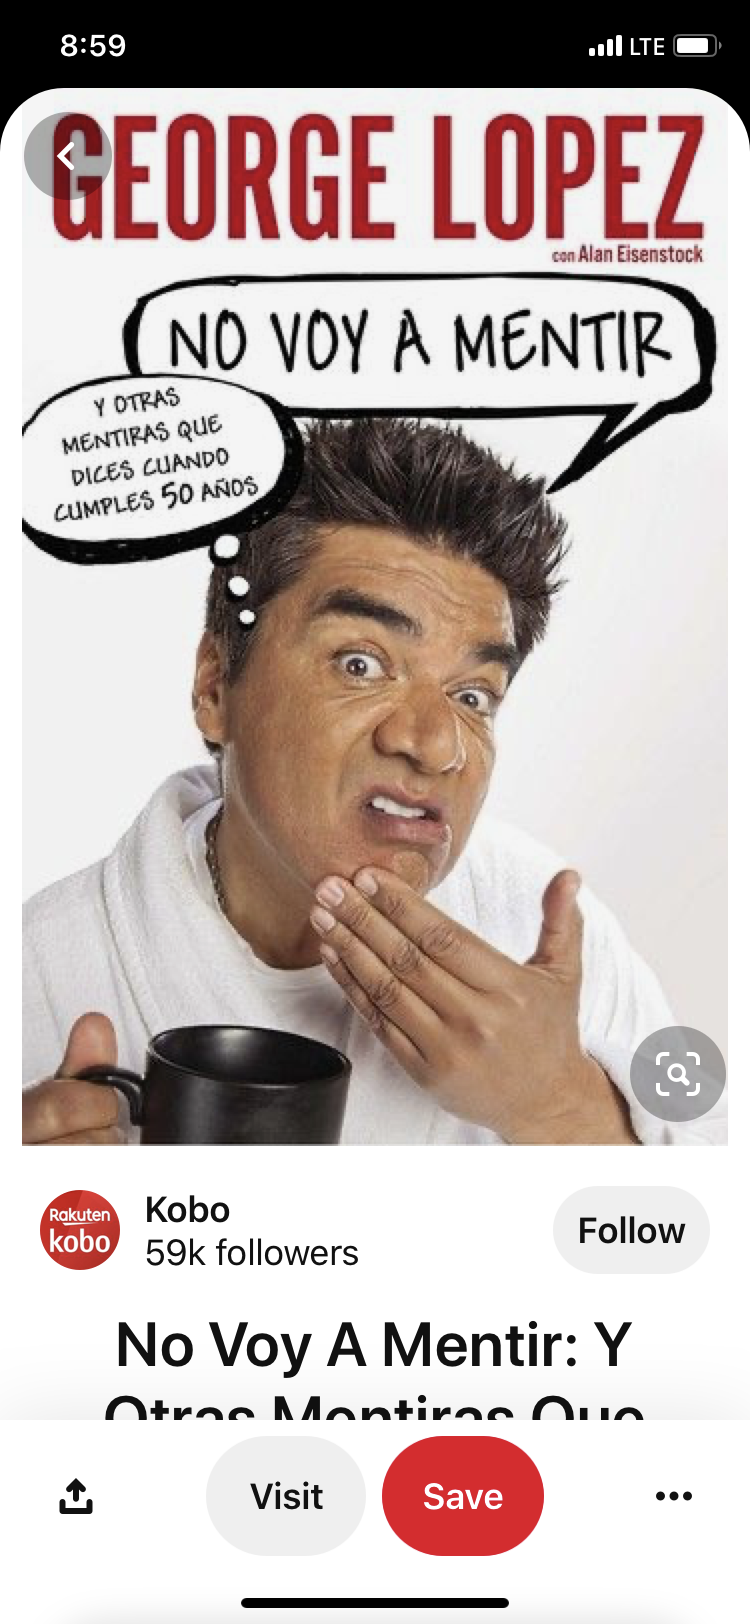 Interview Georgelopez Says Latinos Are Not The Poster People For Illegalimmigration Immigration News Celebrity Latin Hispanic George Lopez Saint George American Actors